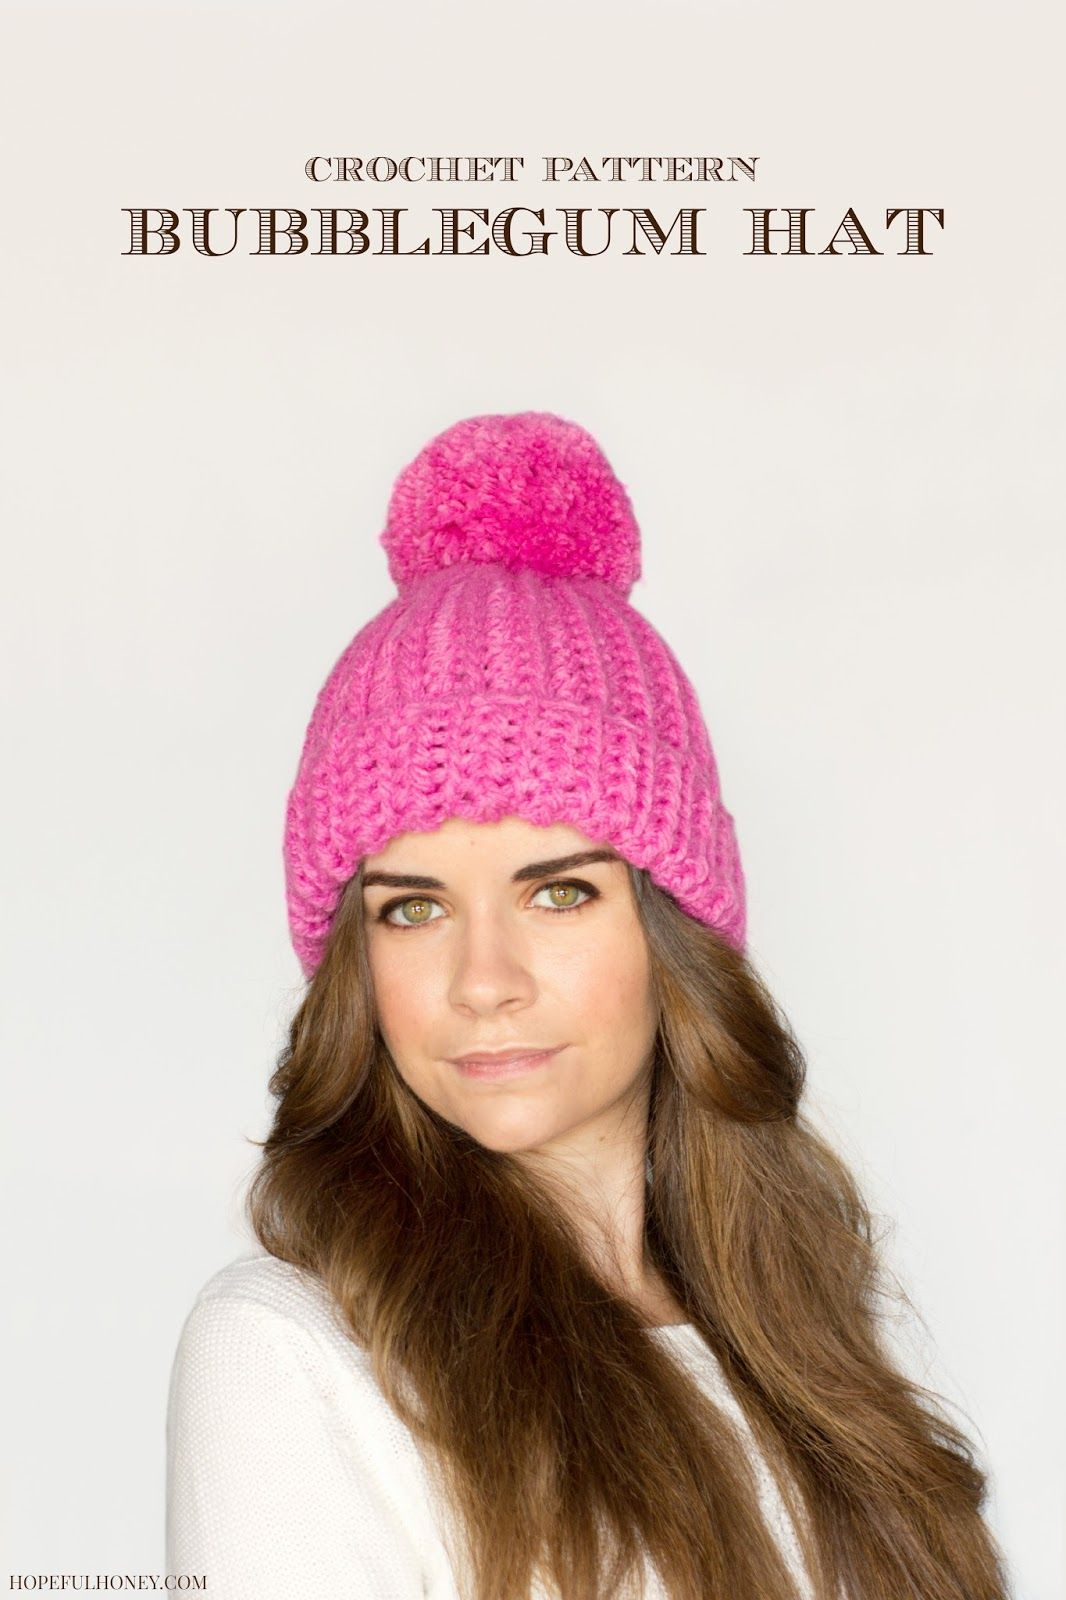 Classic Bubblegum Pompom Hat Crochet Pattern   Hopeful Honey ...